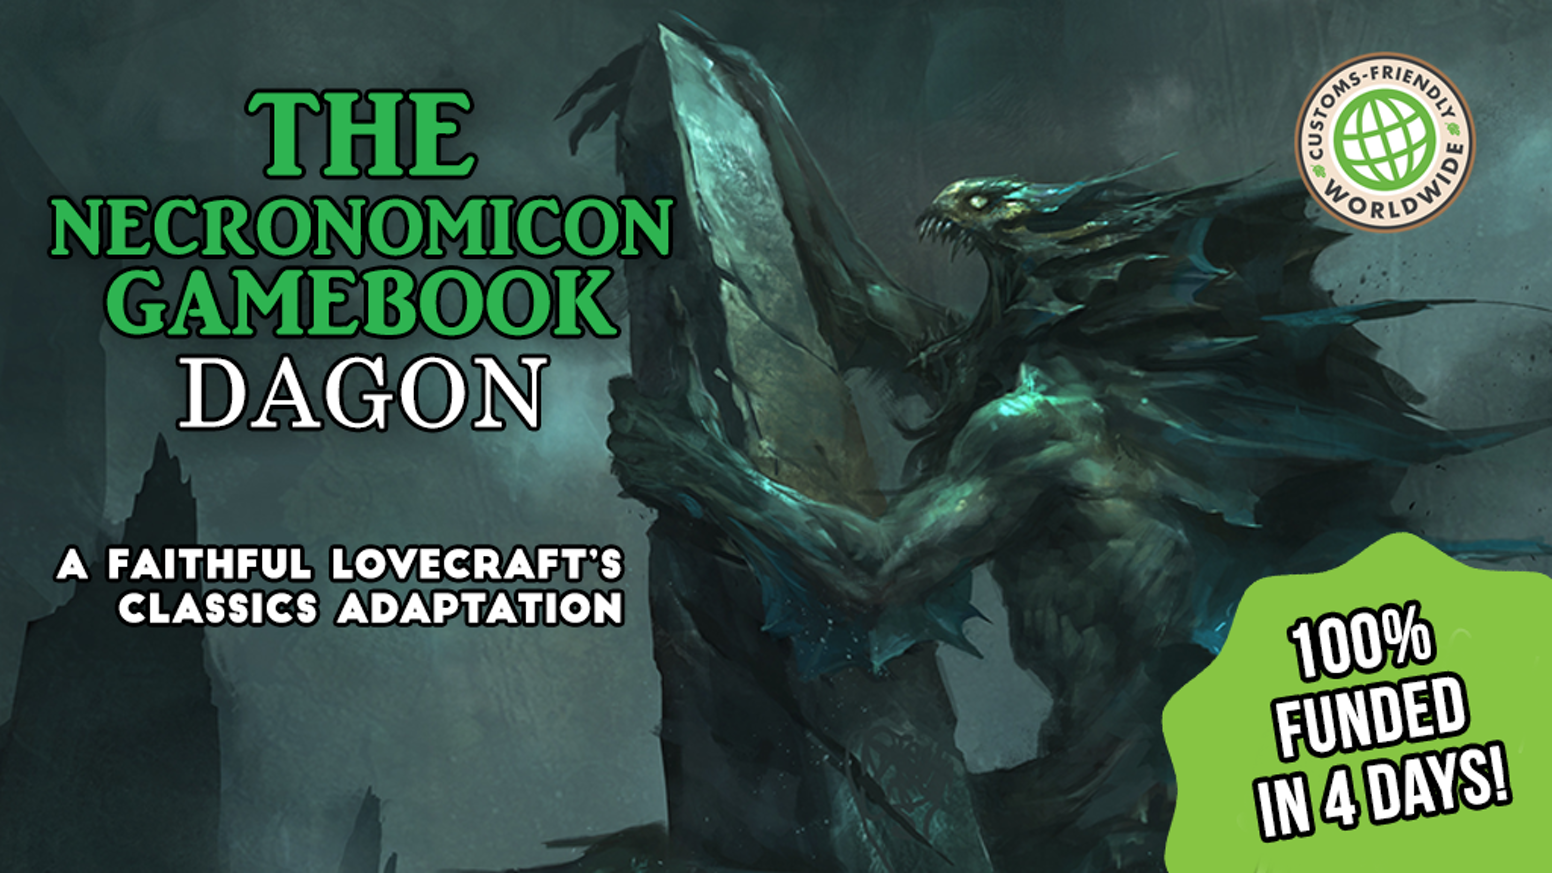 A faithful gamebook adaptation of Lovecraft's short novels Dagon, The Festival, The Hound and Kadath.